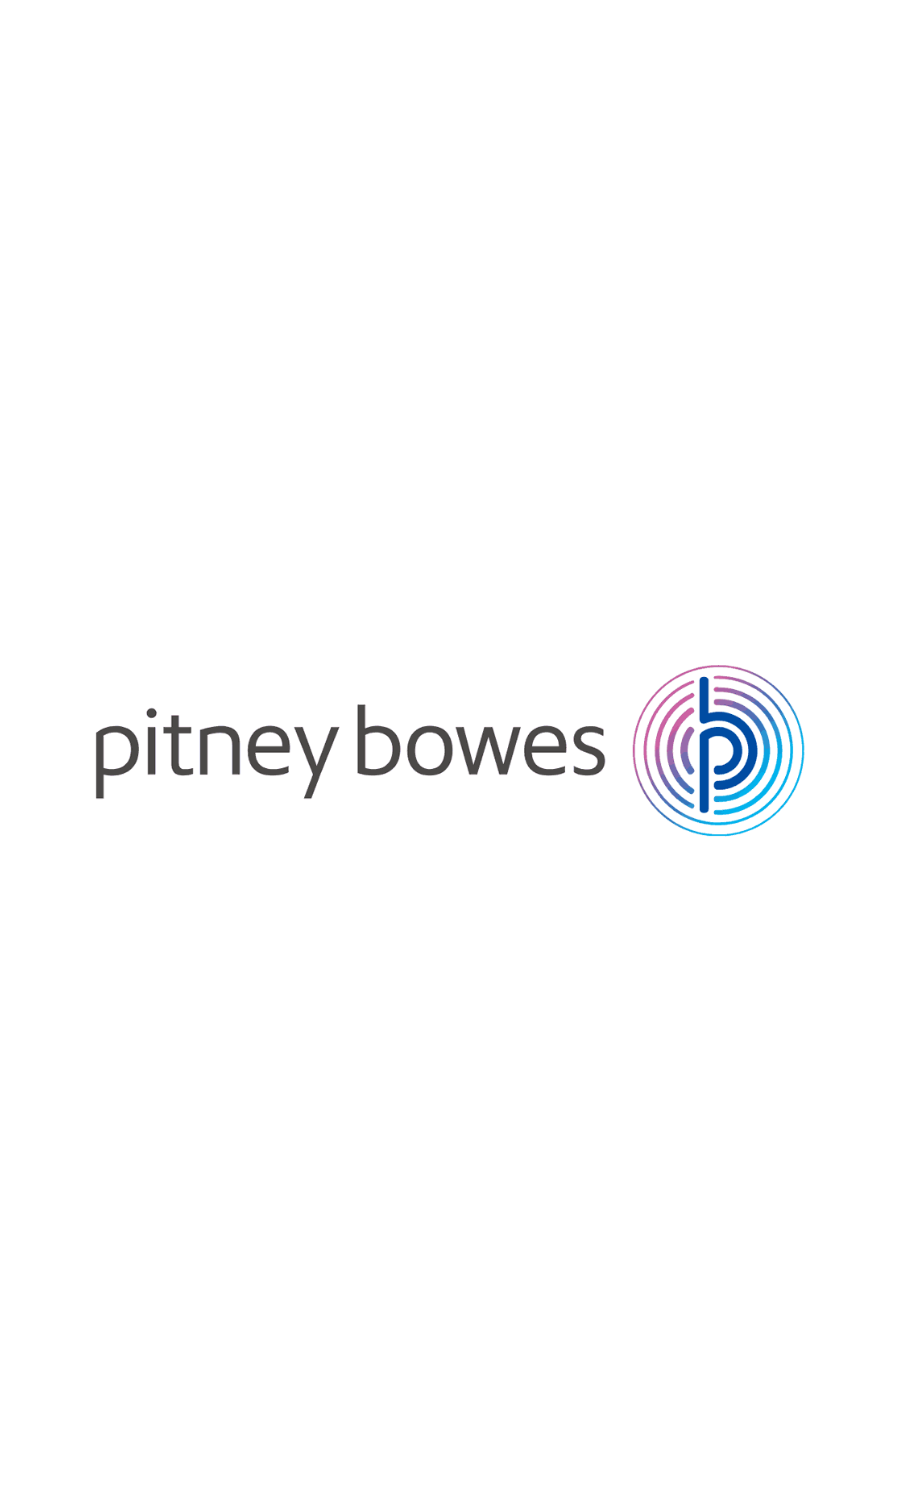 PitneyBowes Logo Home Page